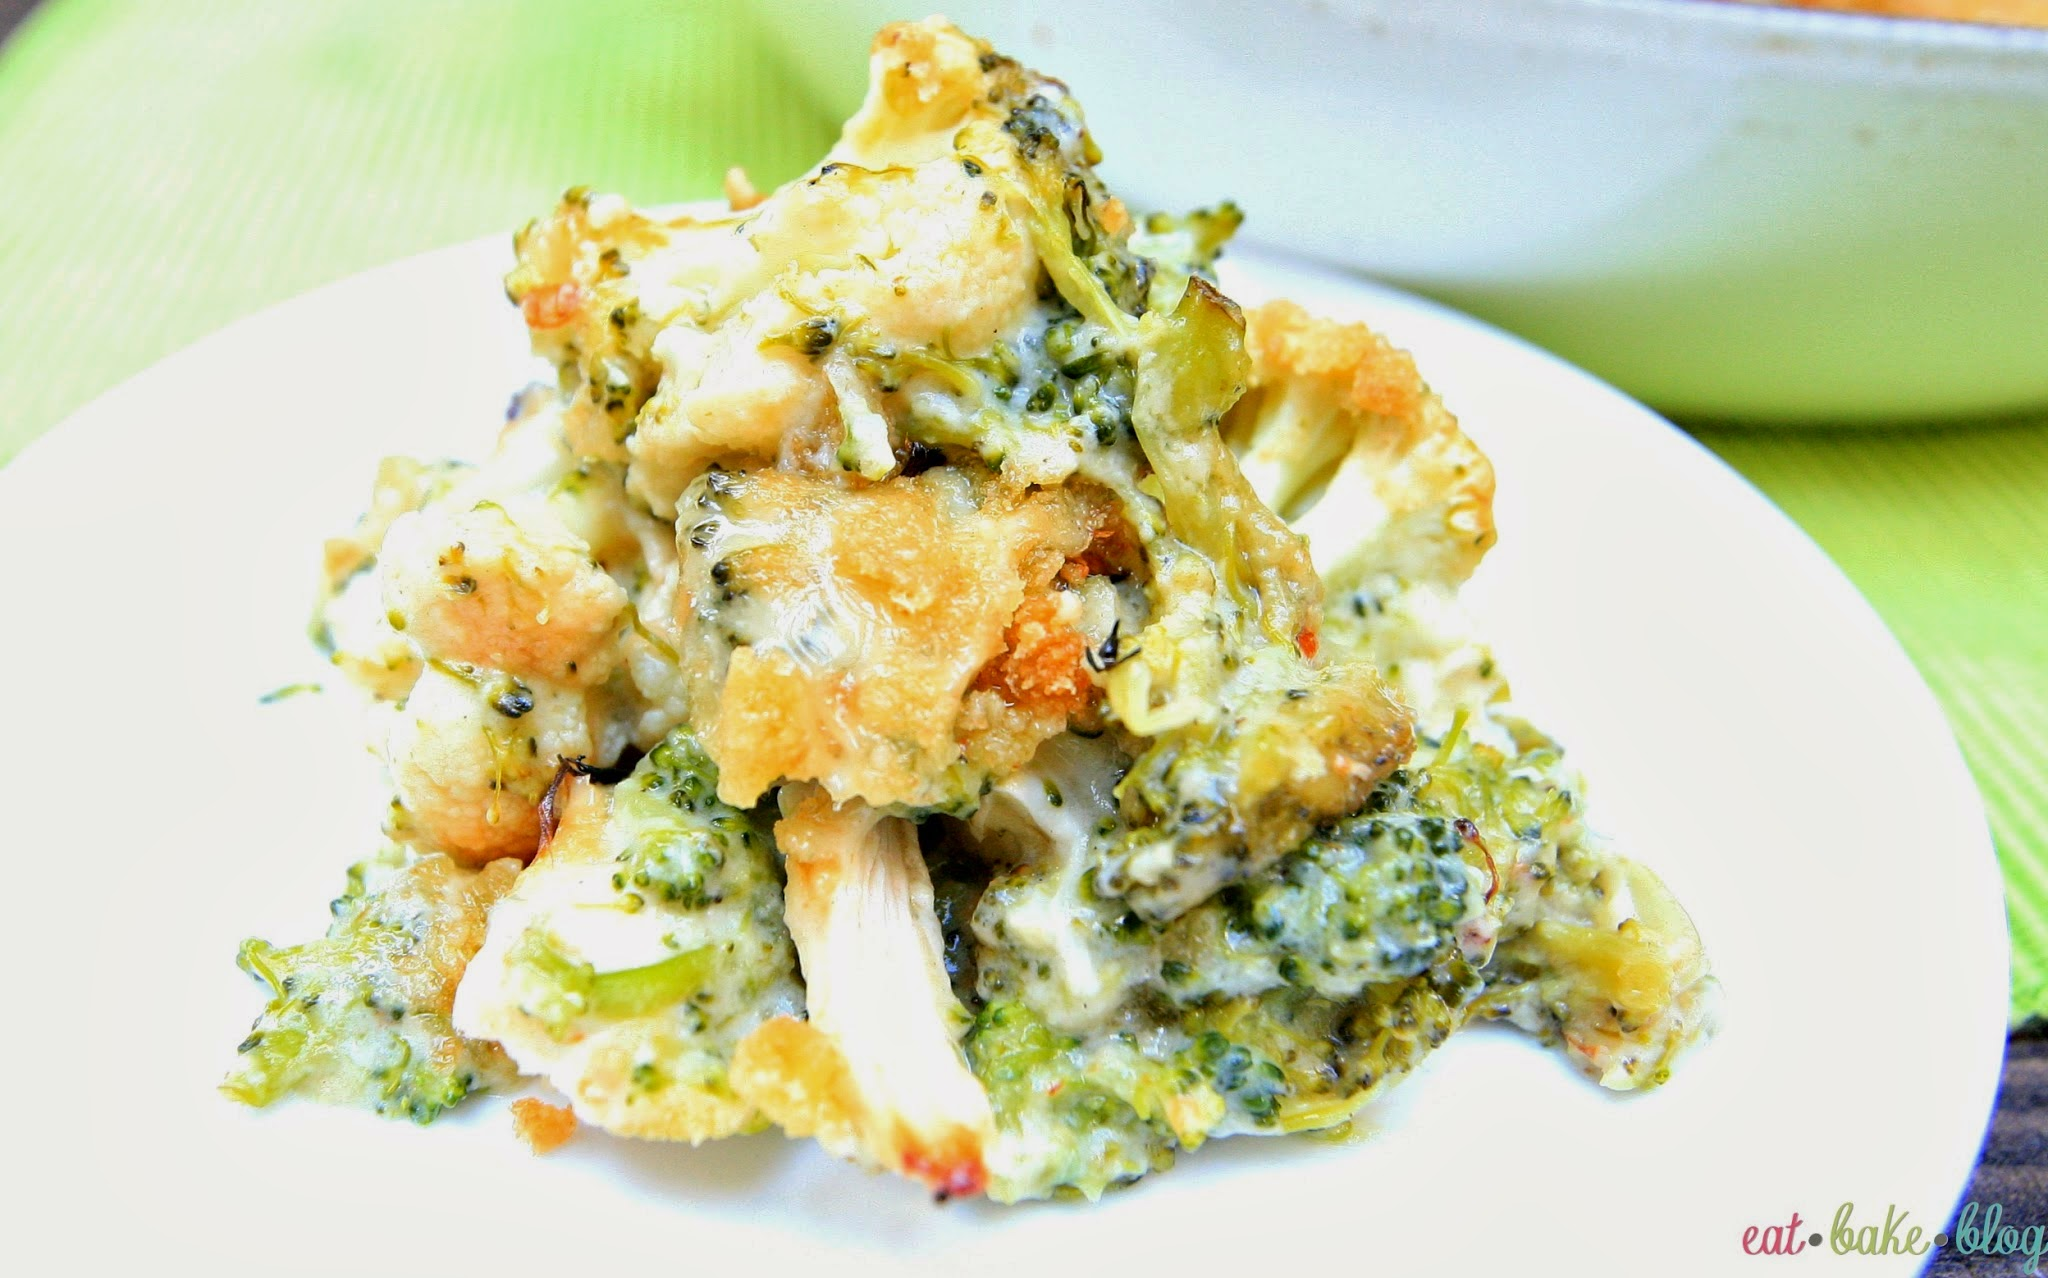 easy weeknight casserole one-dish meal recipe make ahead dinner recipe best chicken casserole easy broccoli casserole broccoli and cheese casserole cauliflower recipe